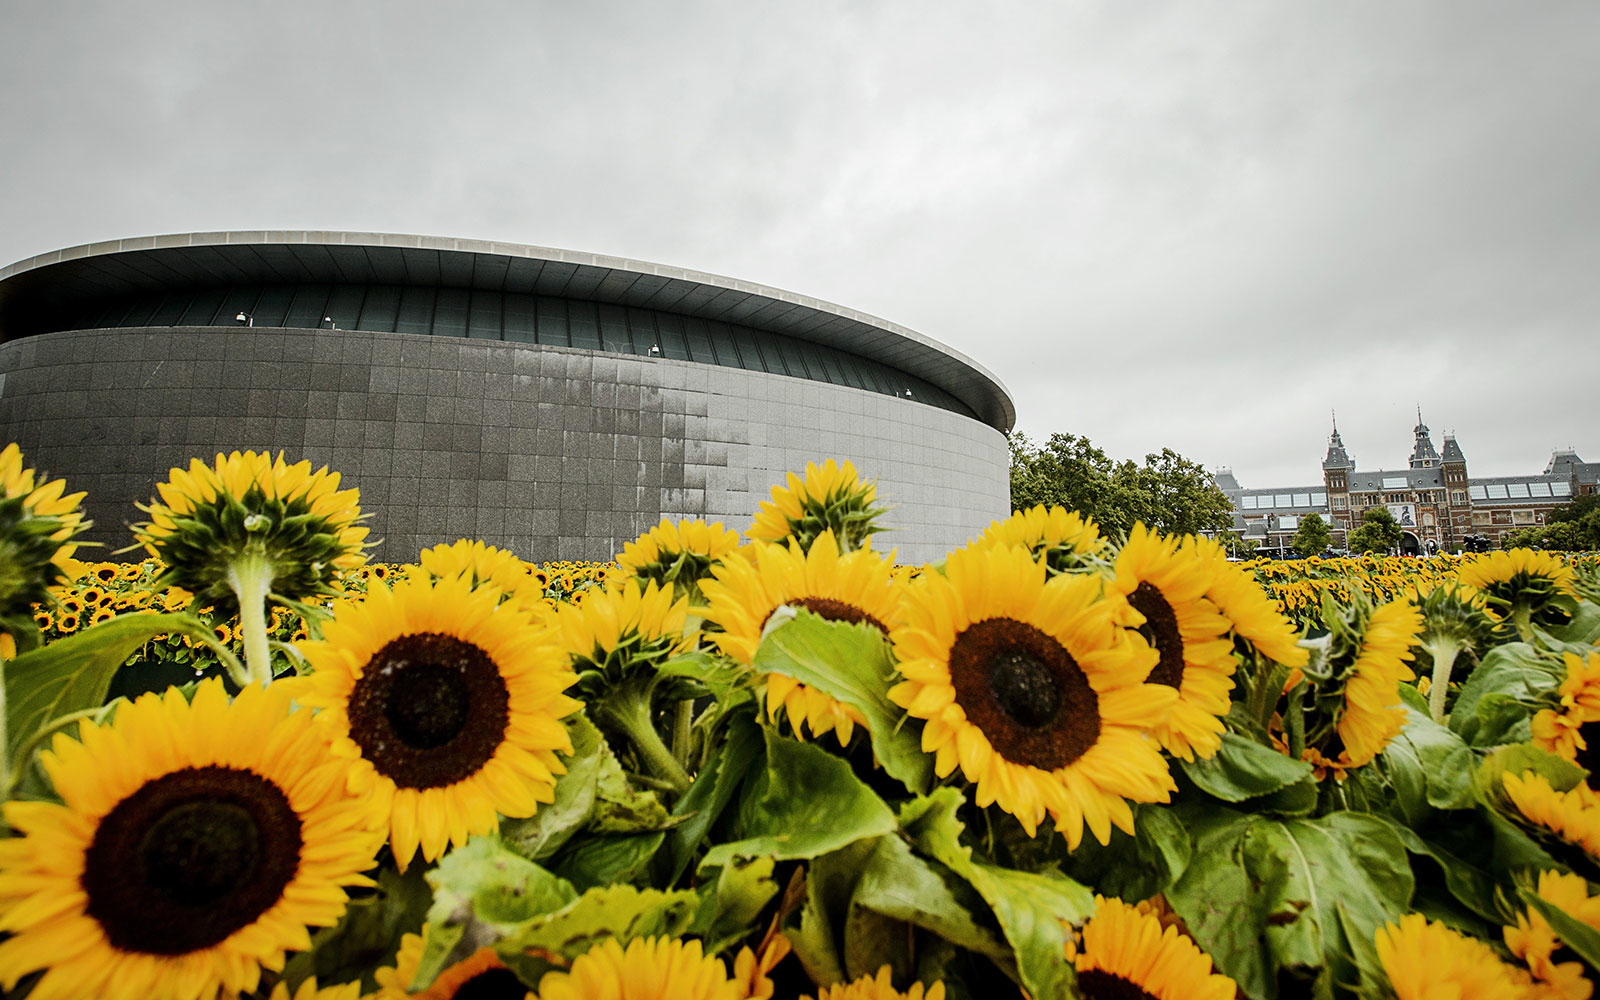 A Sunflower Maze Sprouts In Amsterdam Honor Of Van Gogh